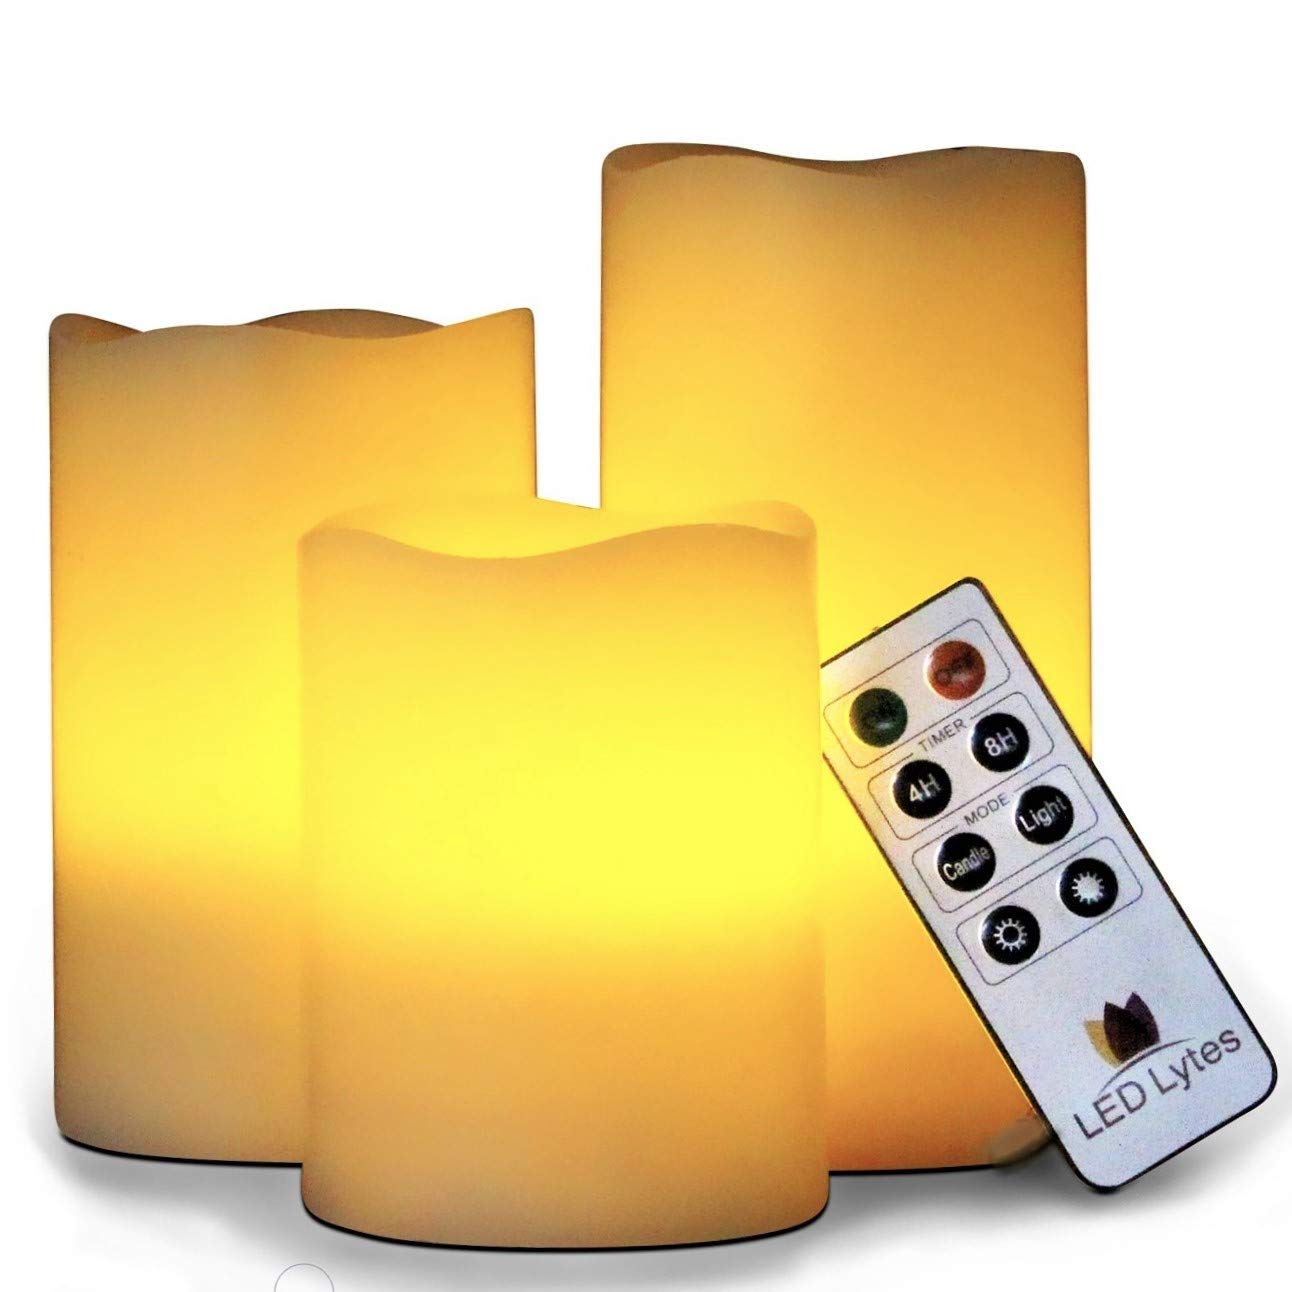 Set of 3 LED Lytes Flickering Flameless Candles with Remote Control